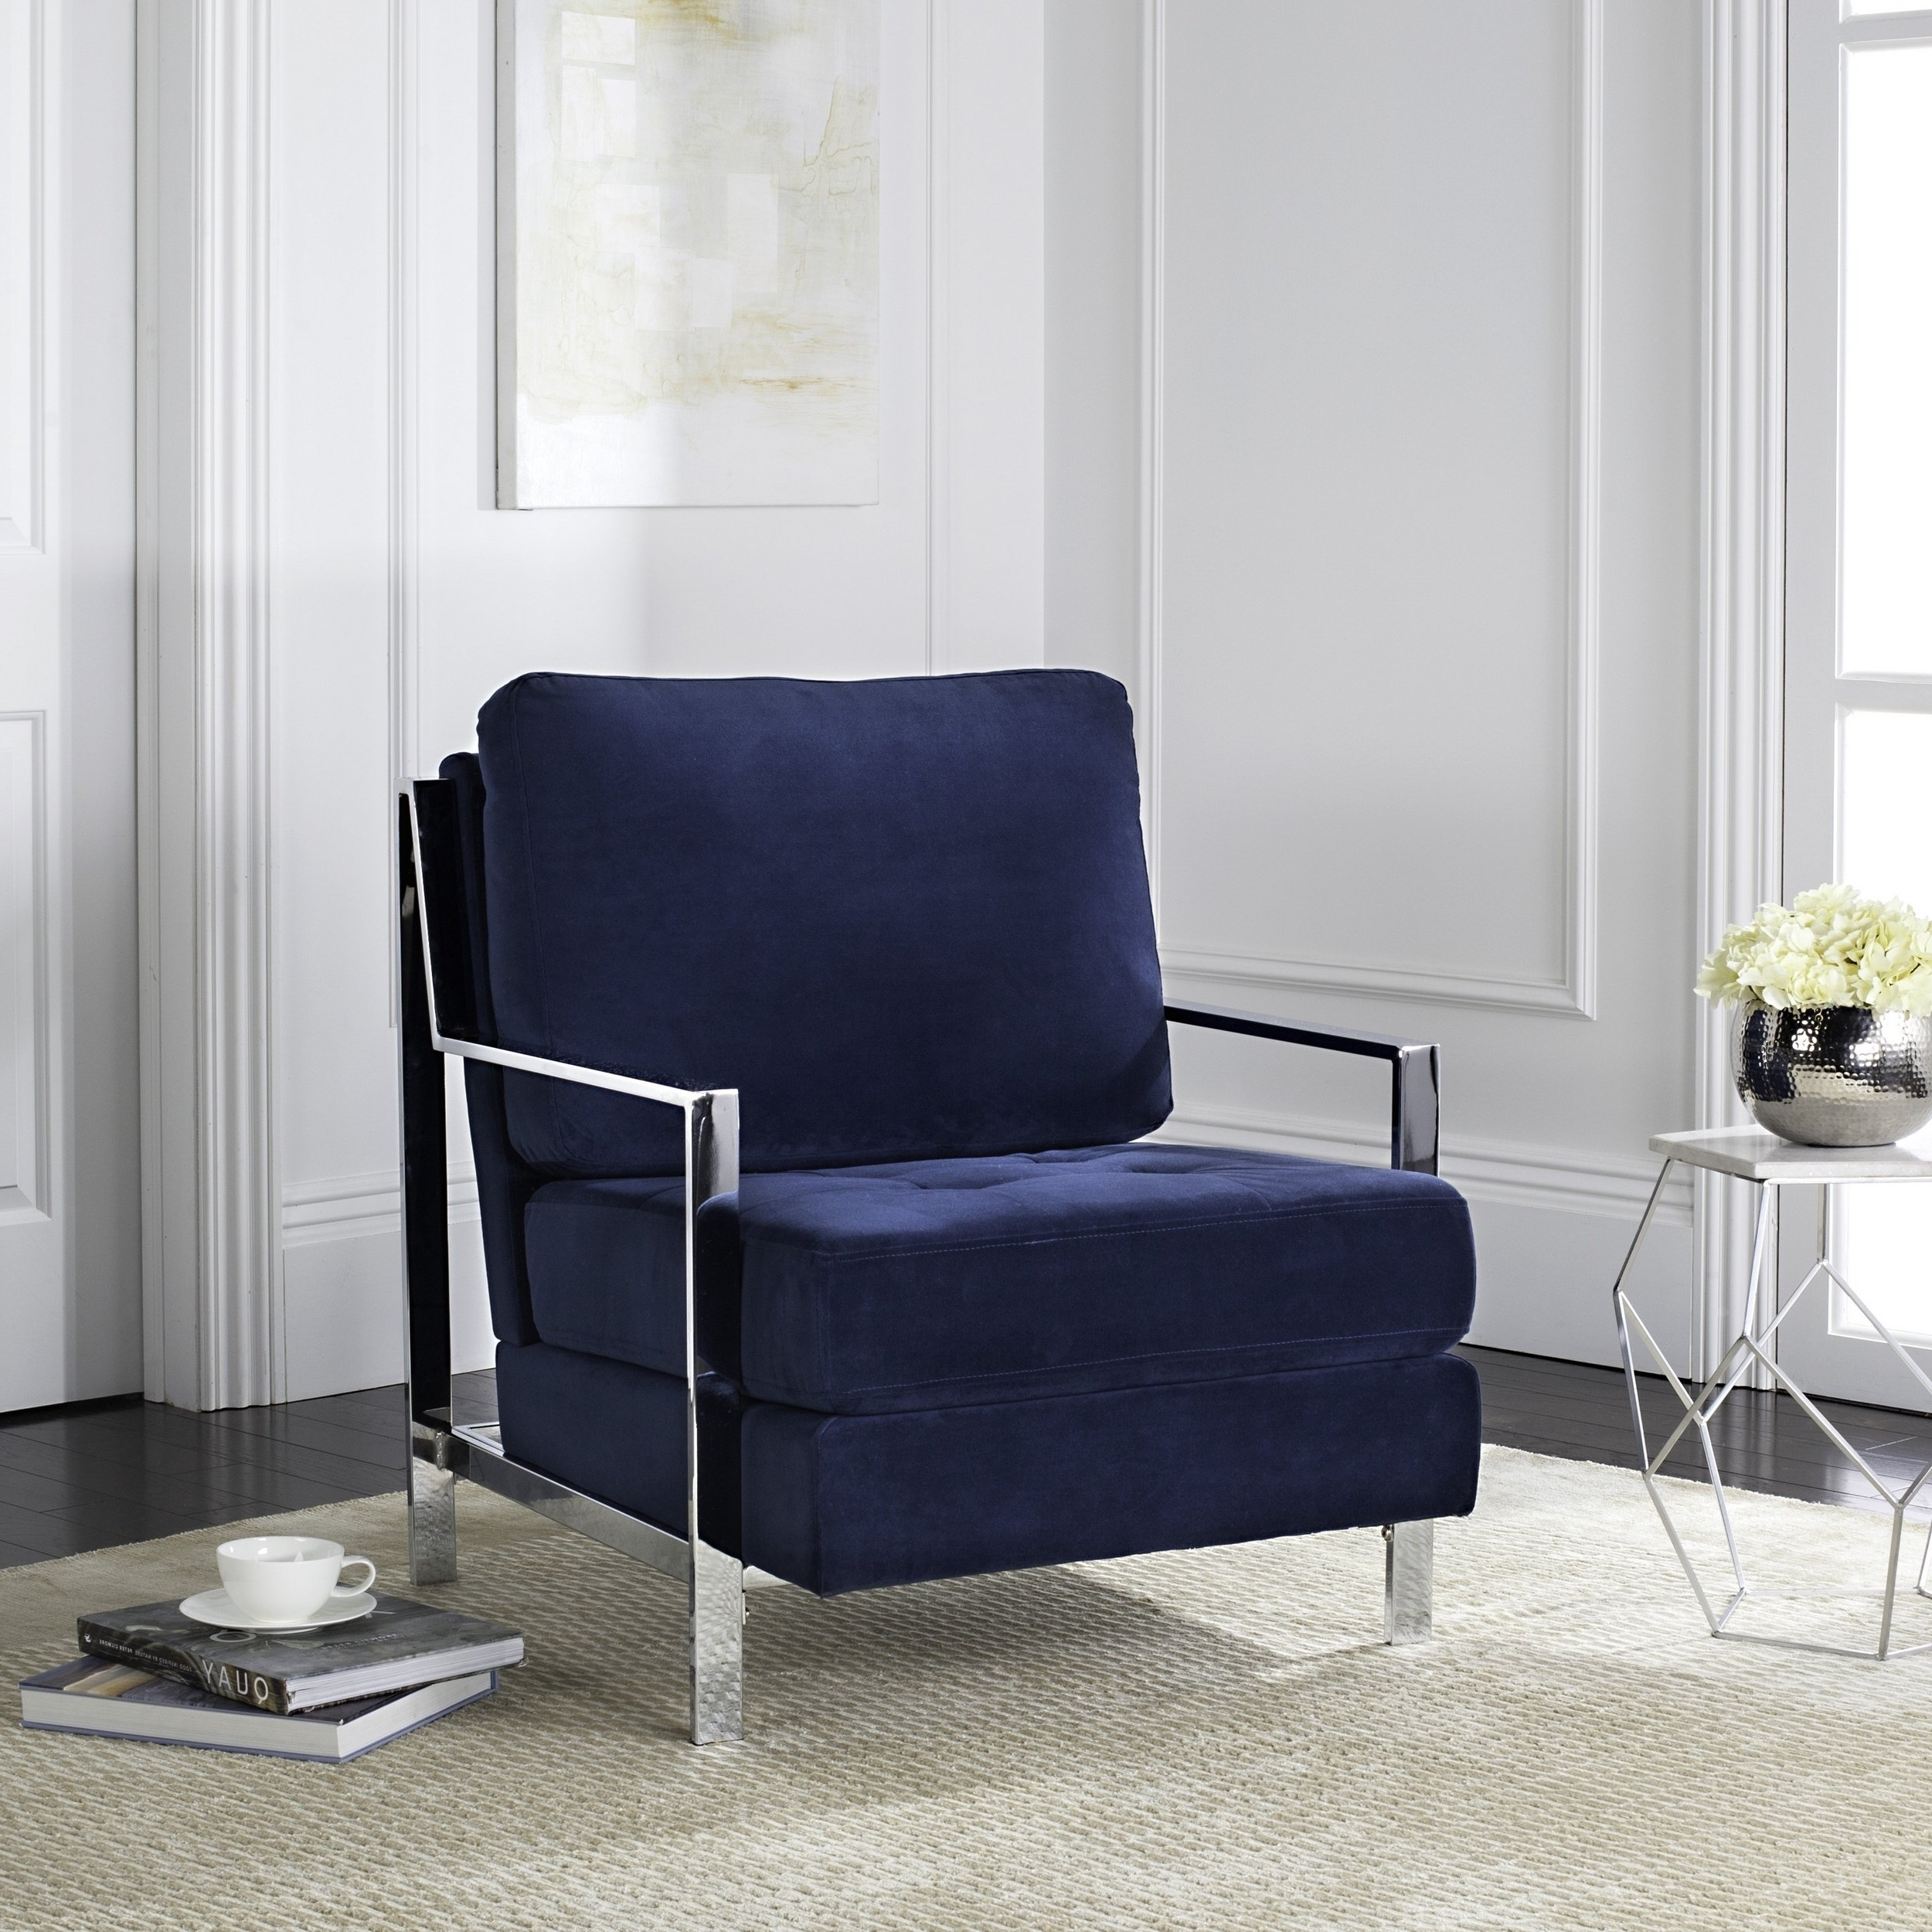 Shop Mid Century Modern Glam Velvet Navy Blue Club Chair – Free In Most Recent Walden Upholstered Side Chairs (View 8 of 20)